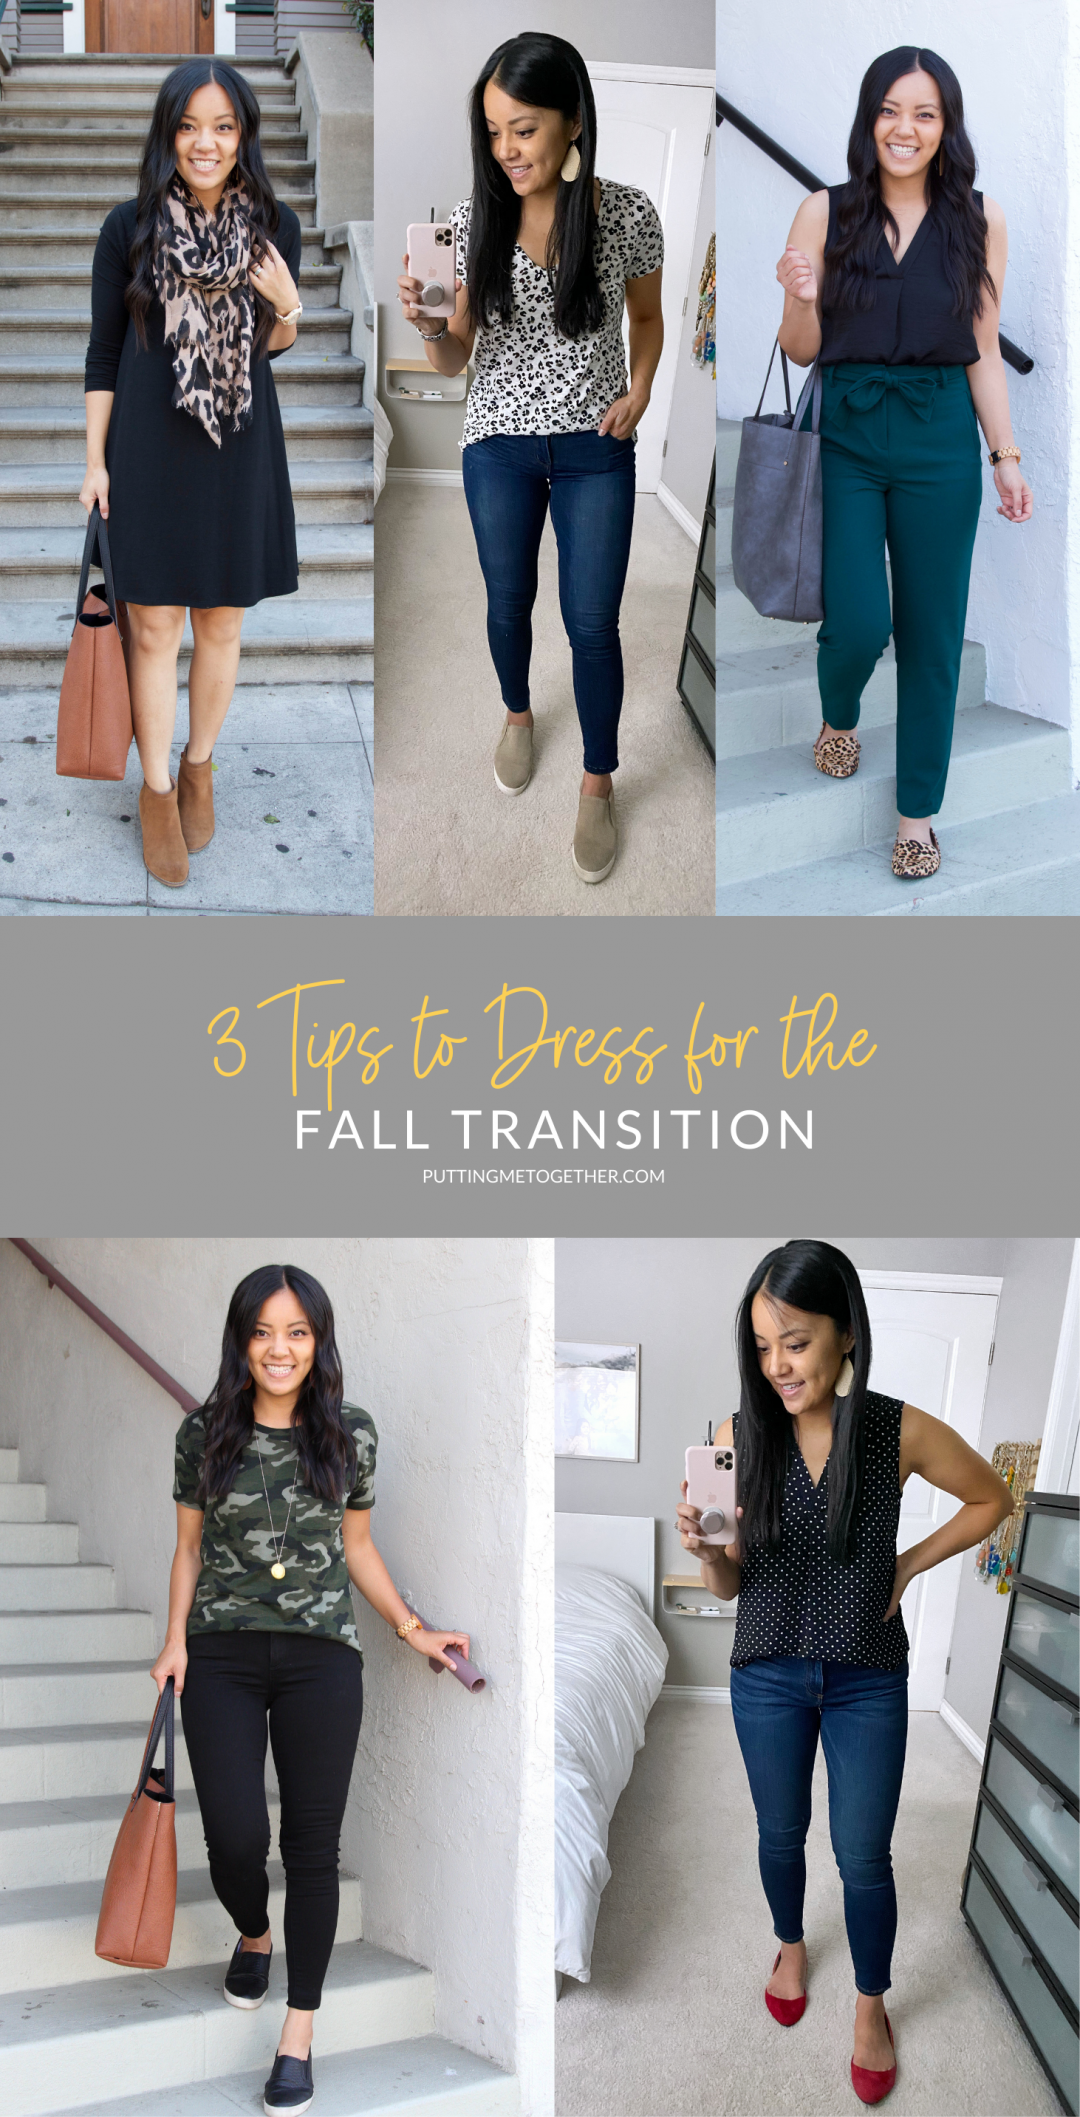 Outfits for the Transition to Fall